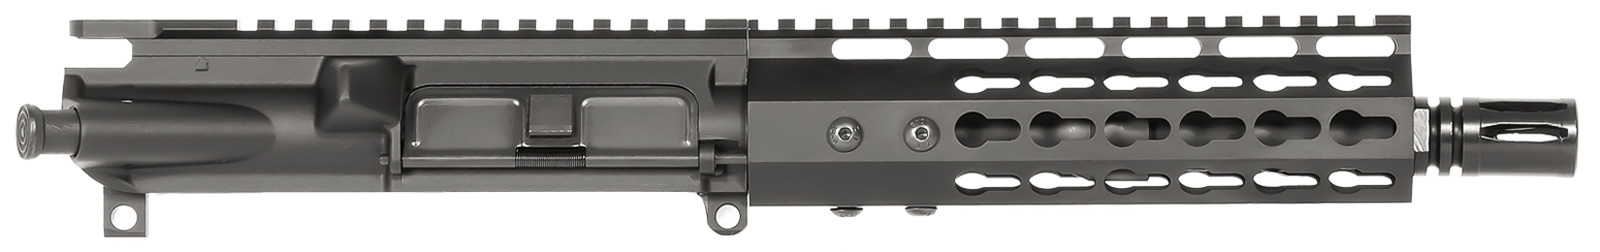 ar-15-upper-assembly-7-5-9mm-110-7-gen-2-keymod-ar-15-handguard-rail-non-lock-back